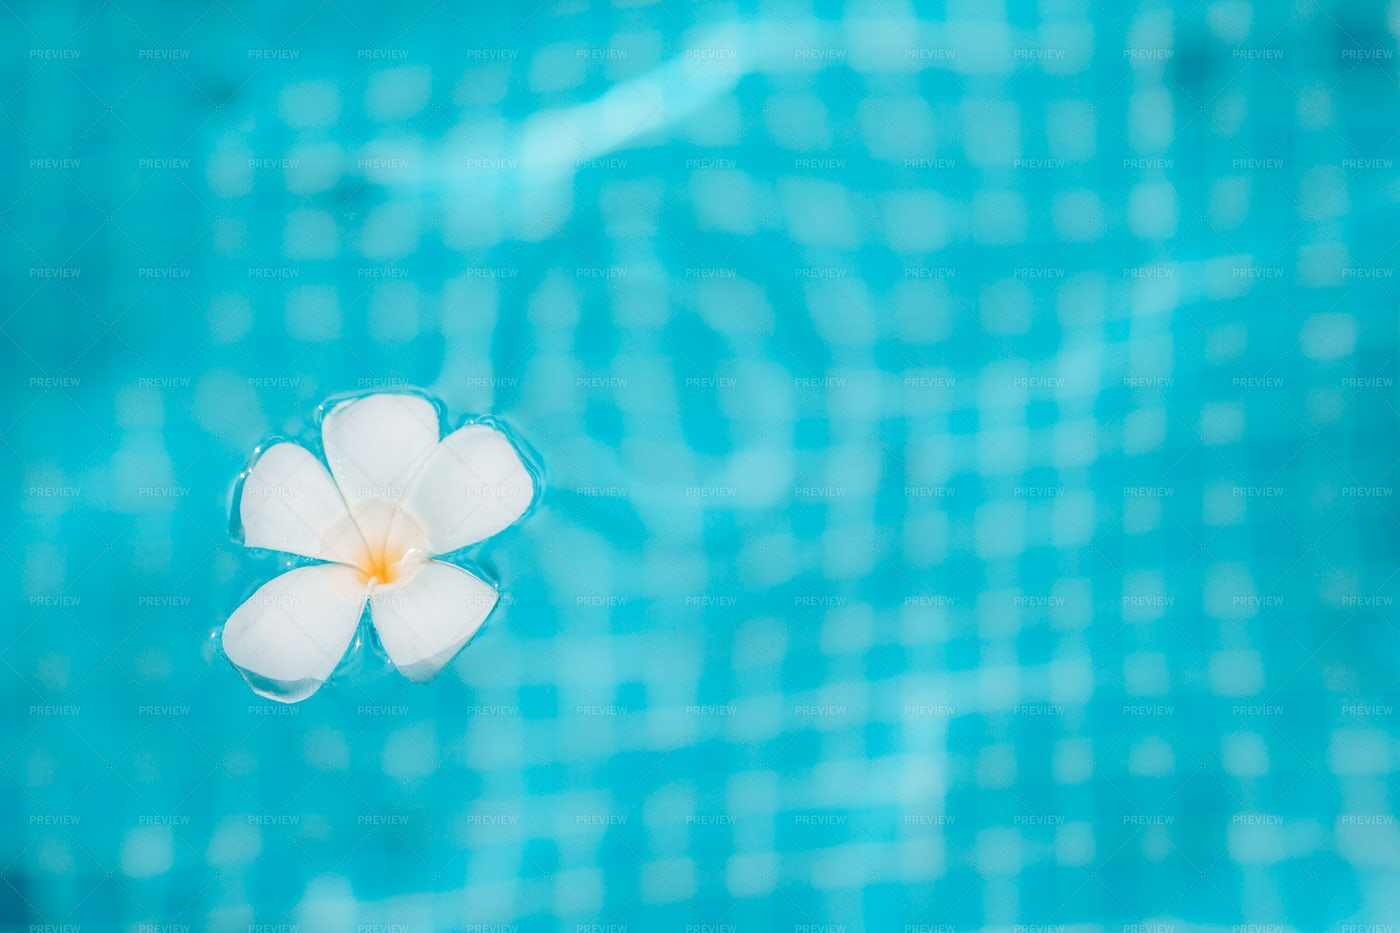 Pool And Tropical Flower: Stock Photos